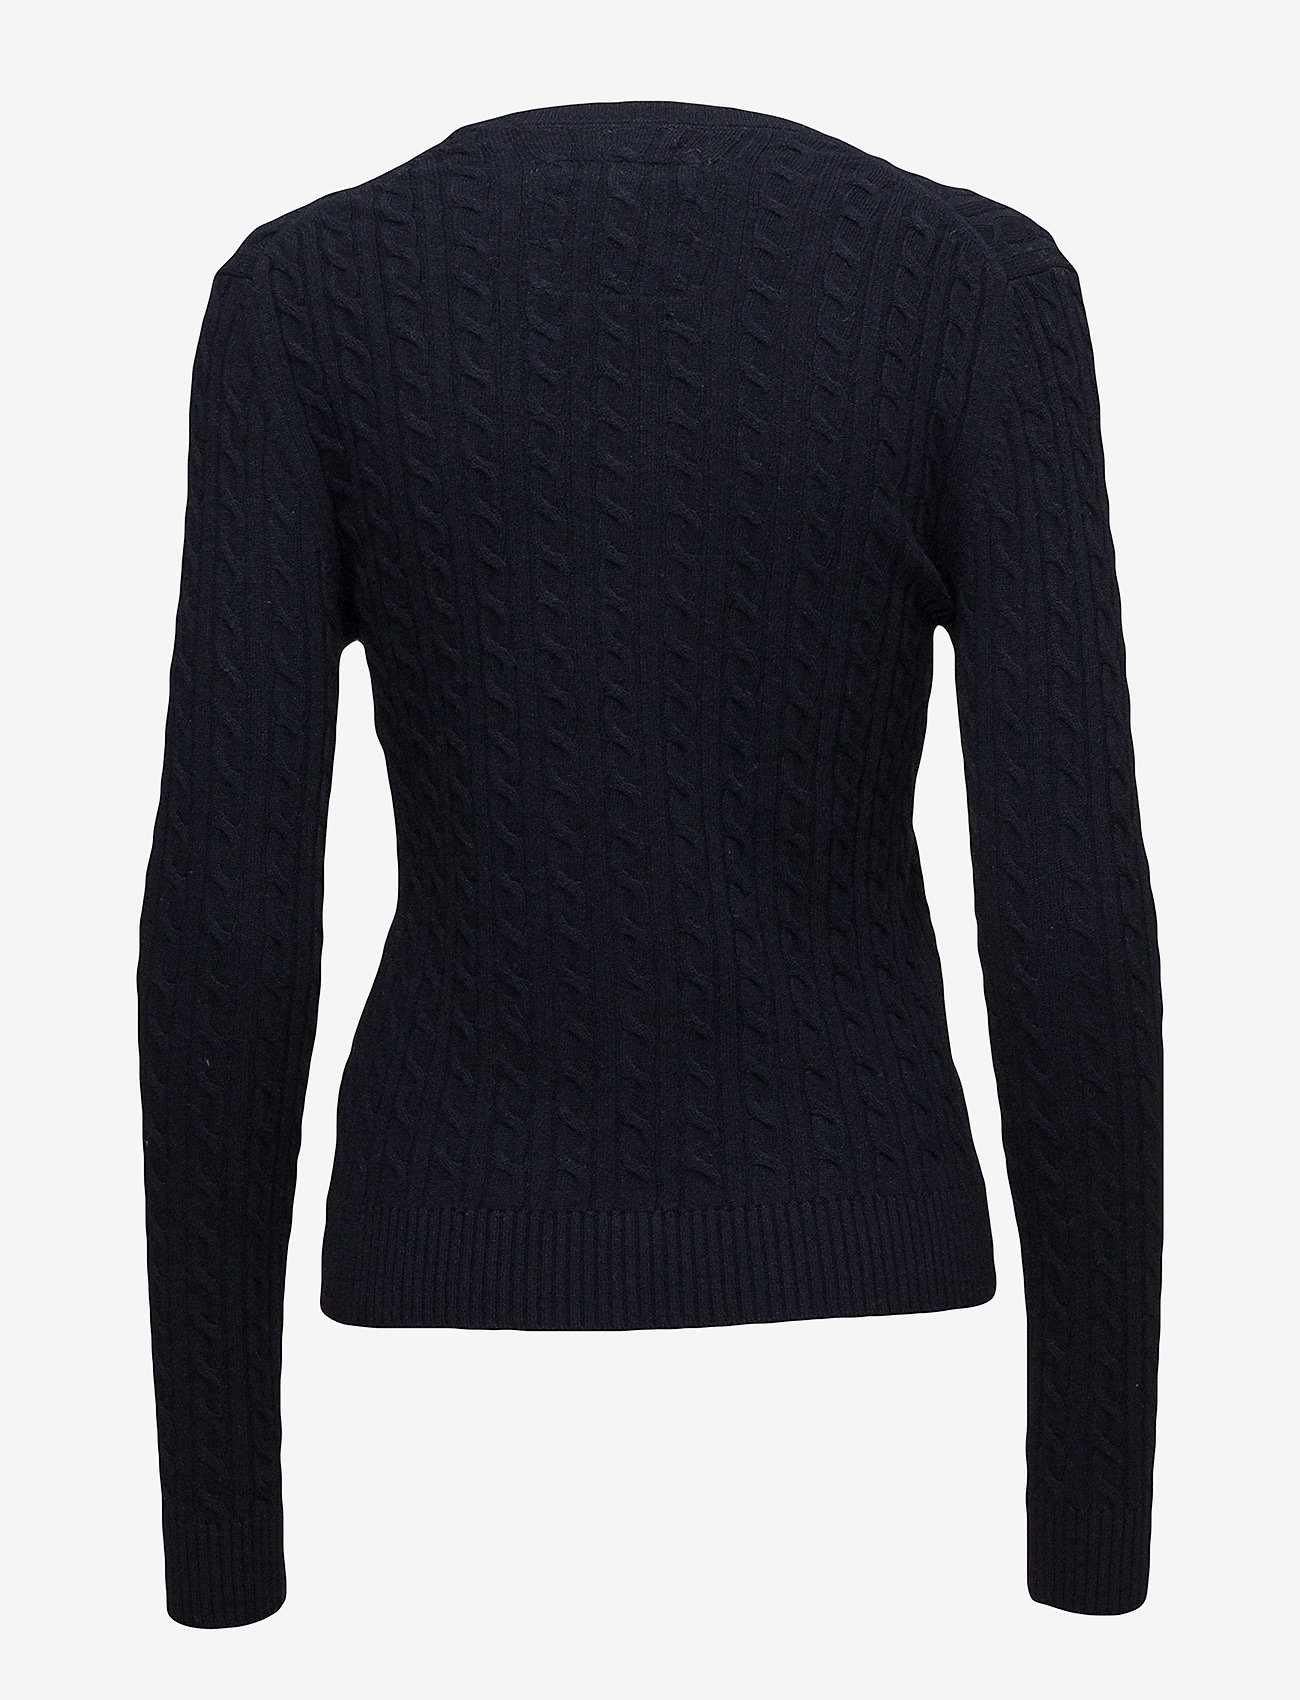 Luxe Mini Cable Knit (Navy) - Superdry yHDD3j